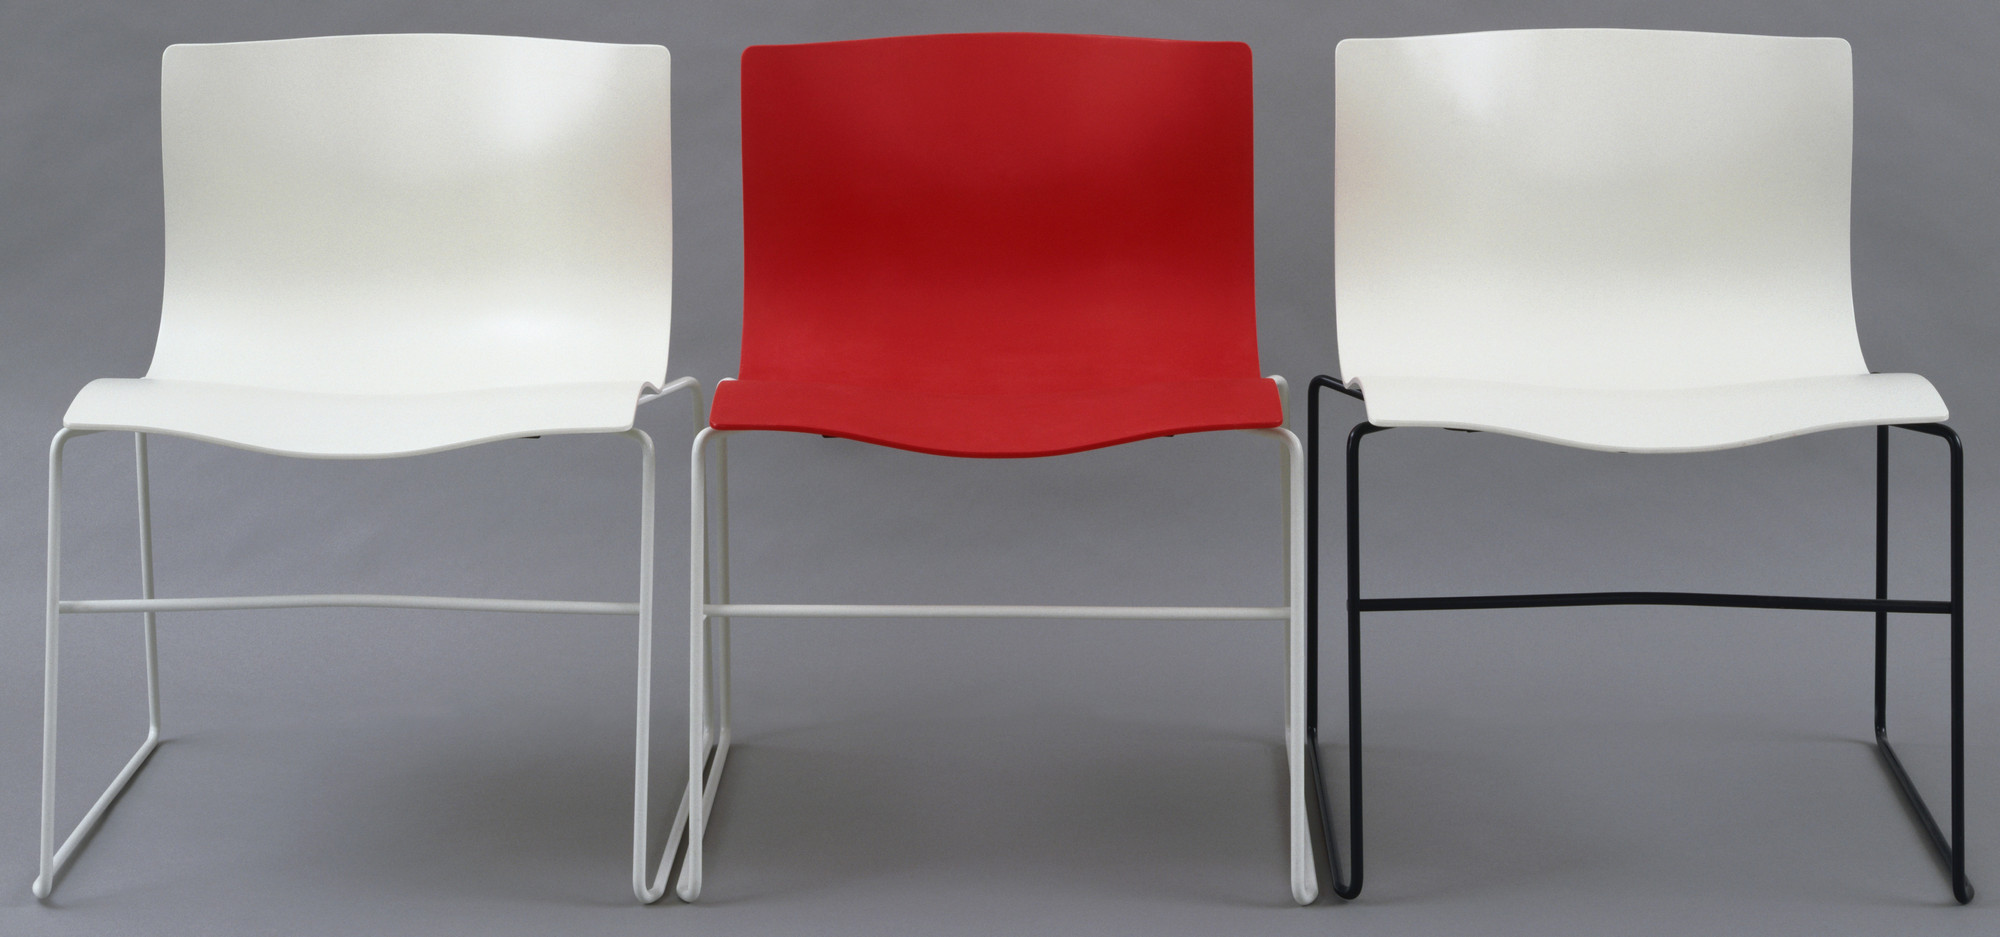 Massimo Vignelli, Lella Vignelli, David Law. Handkerchief Chair. 1985